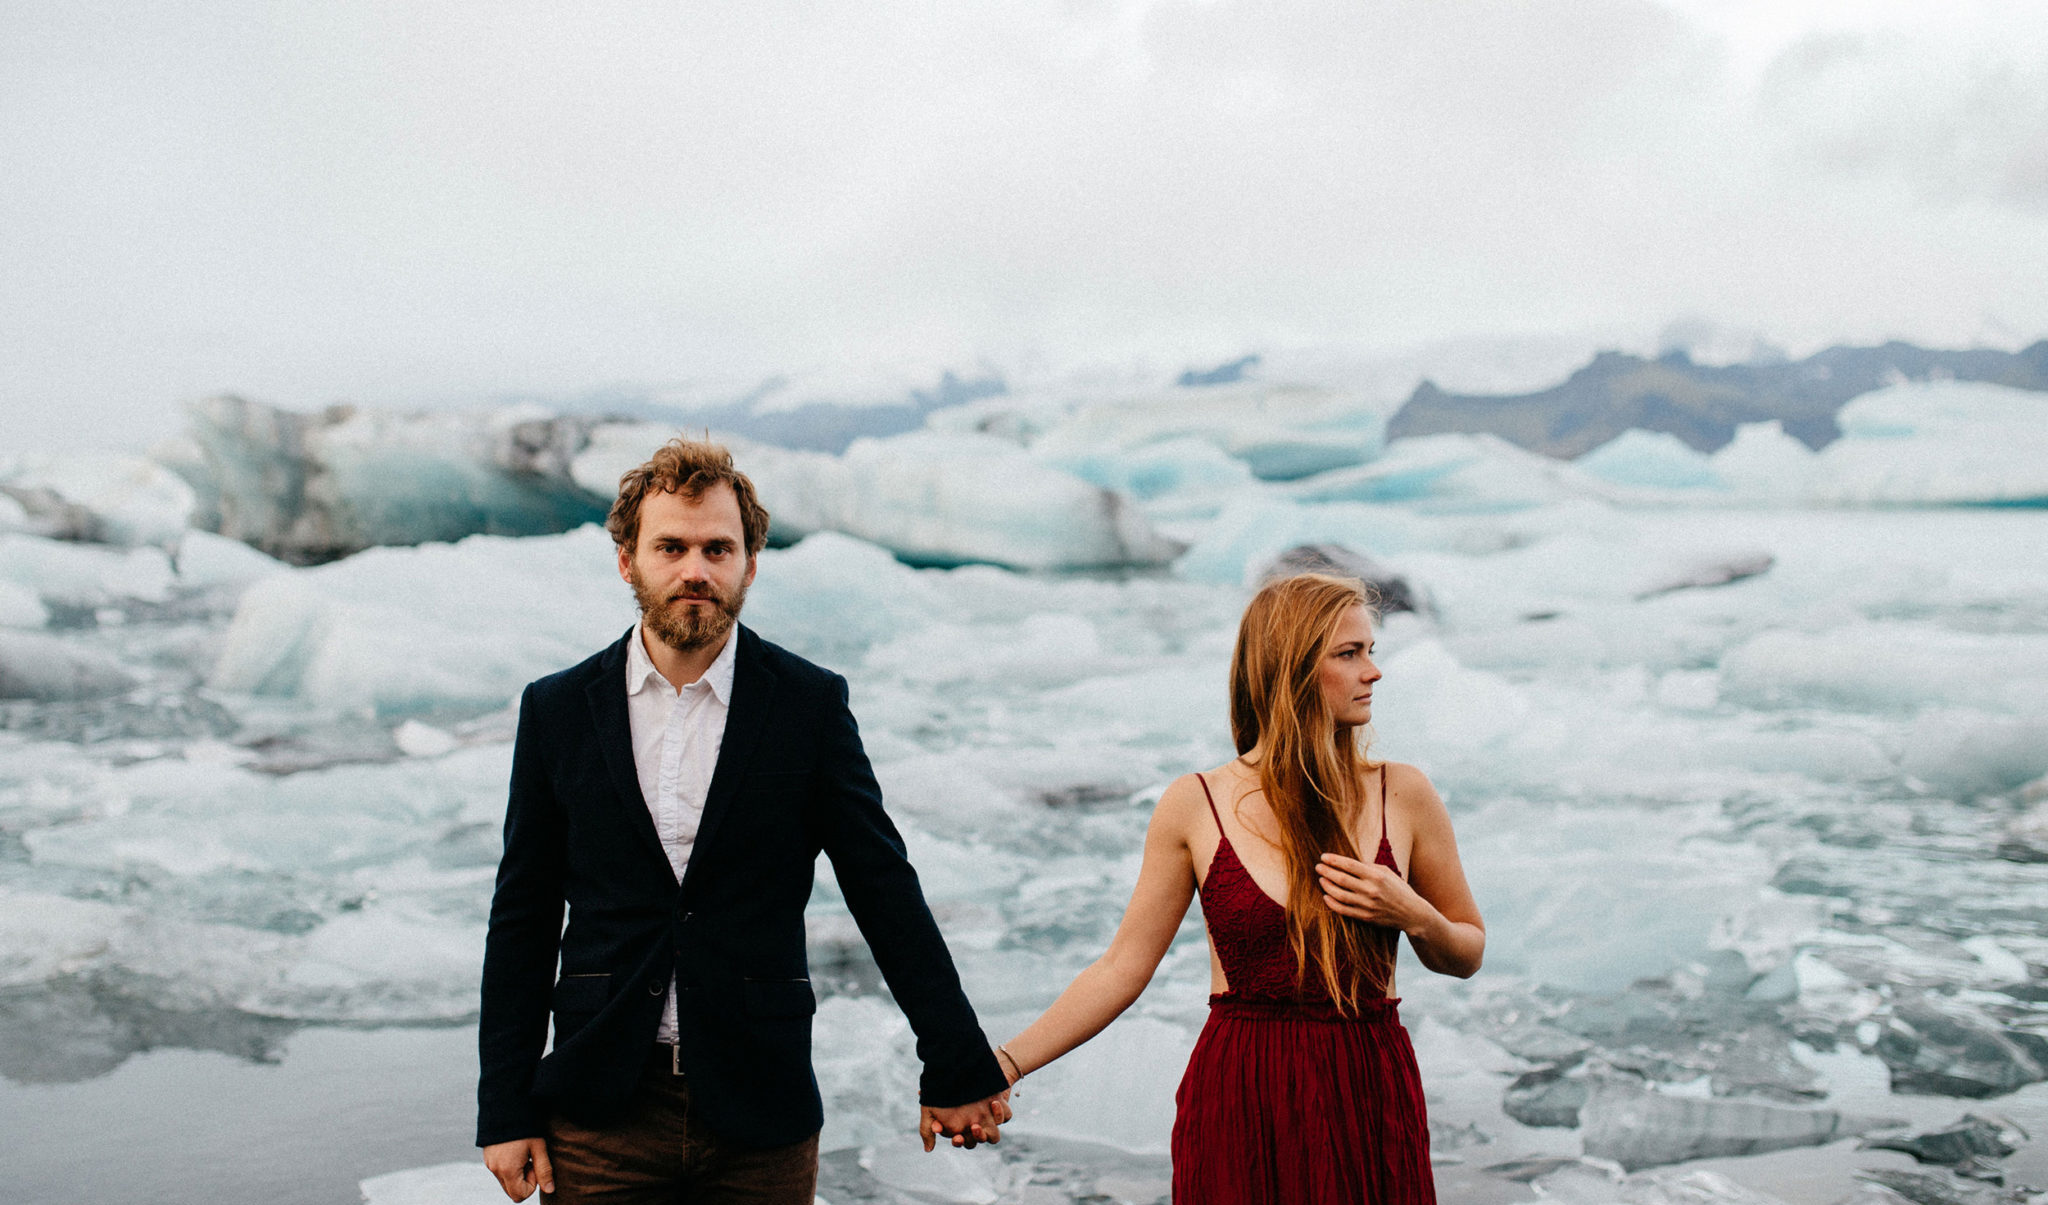 Iceland Jökulsárlón Glacier Lagoon Elopement wedding photographer